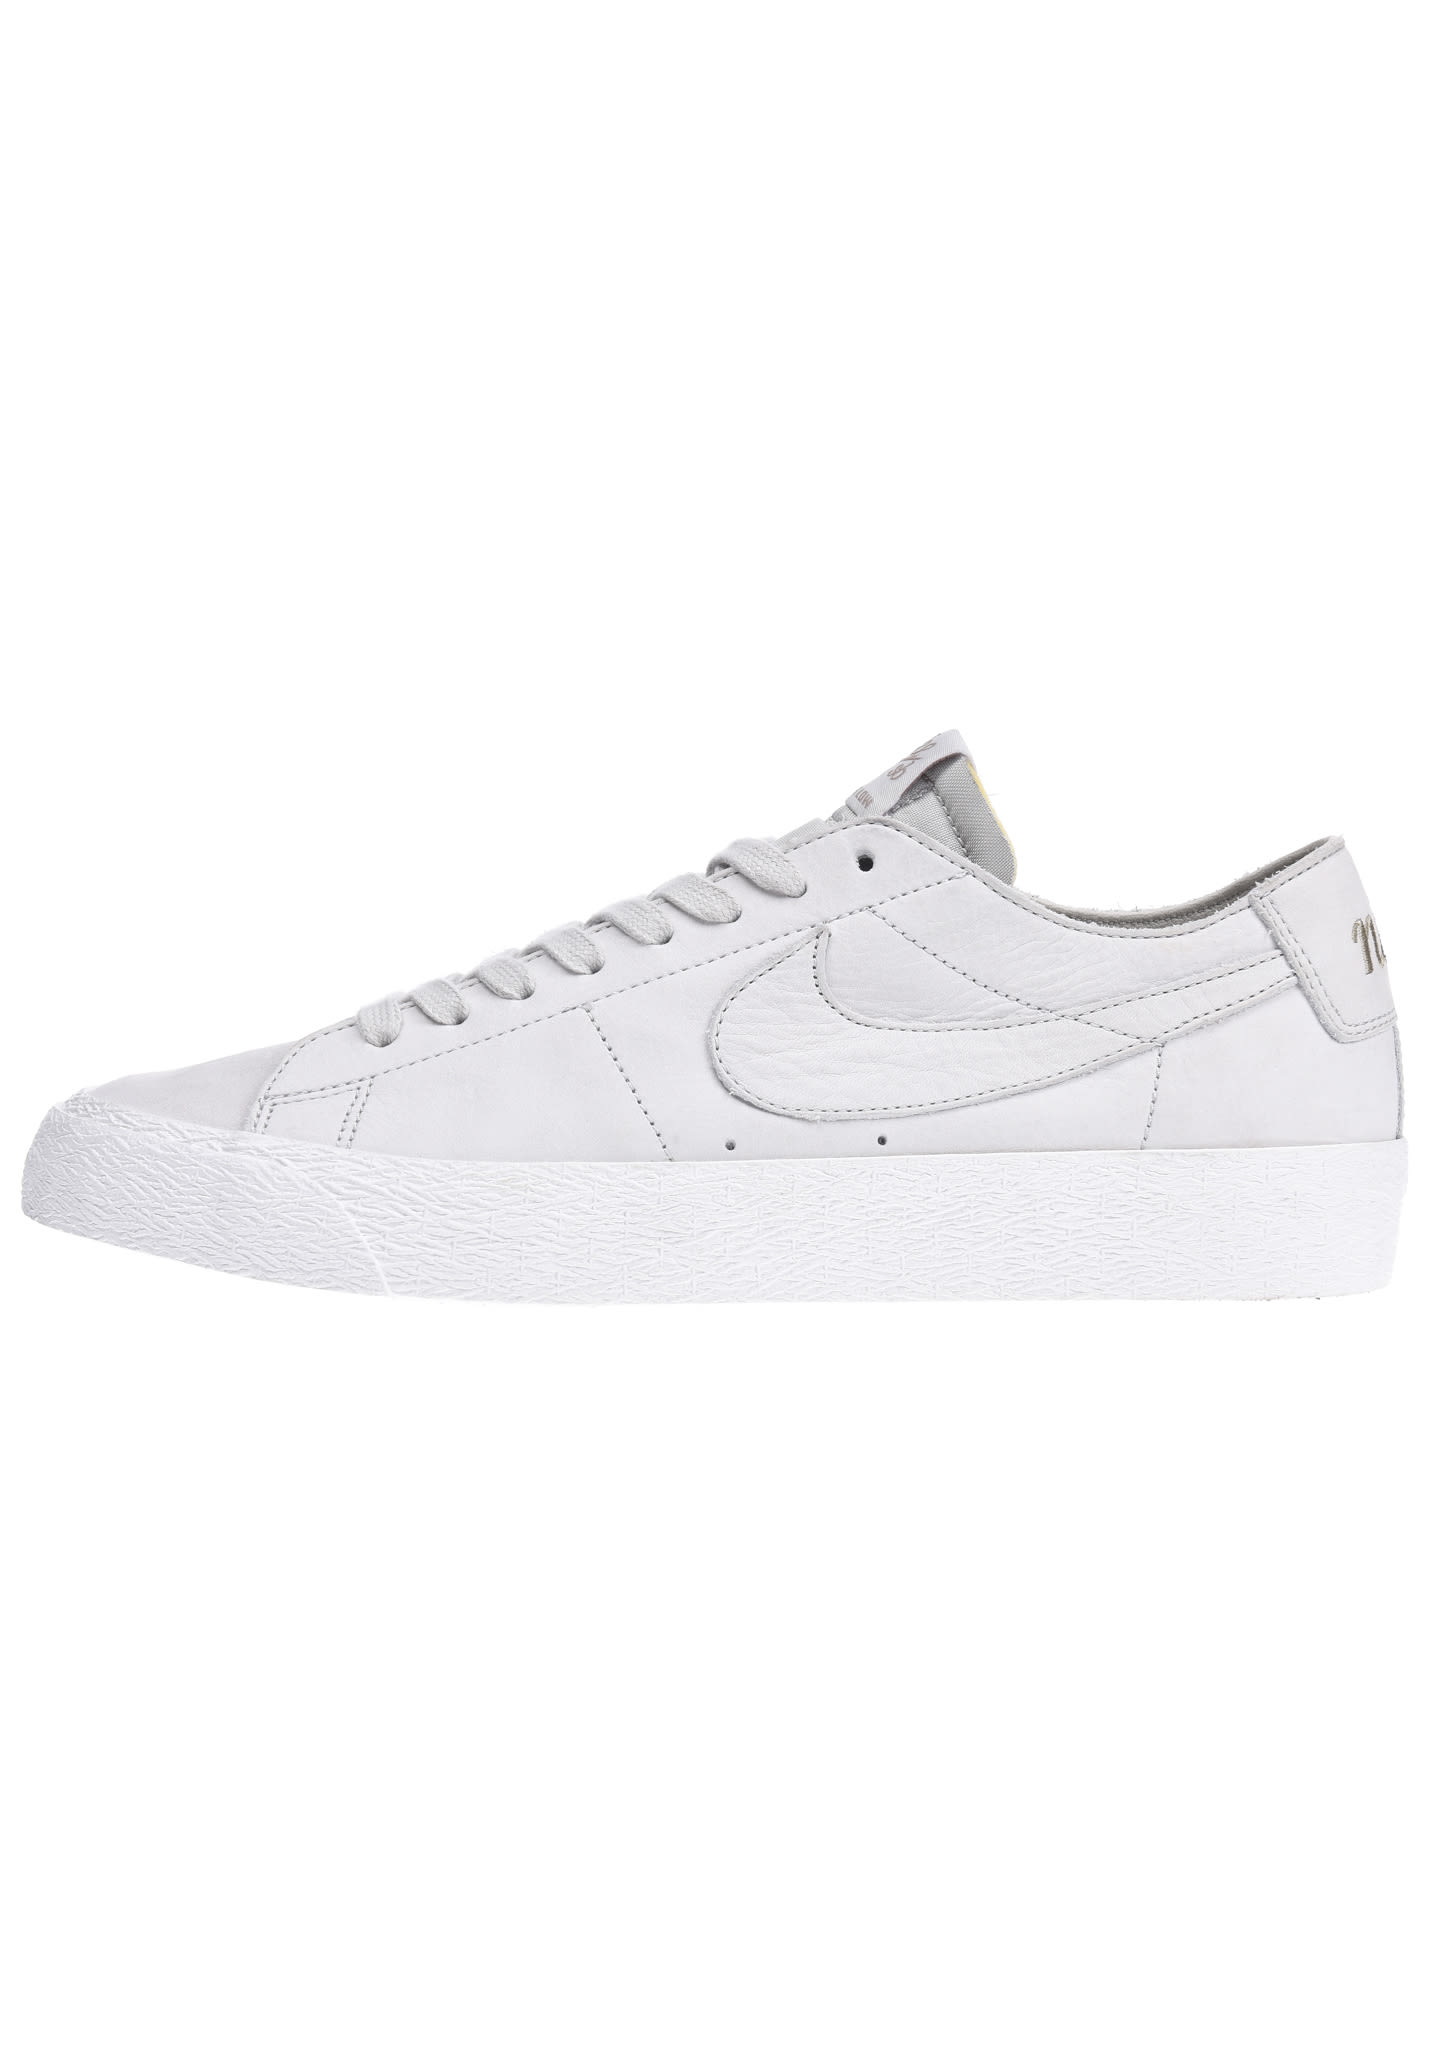 buy online 9f117 d6963 NIKE SB Zoom Blazer Low Decon - Sneaker für Herren - Grau - Planet Sports  ...